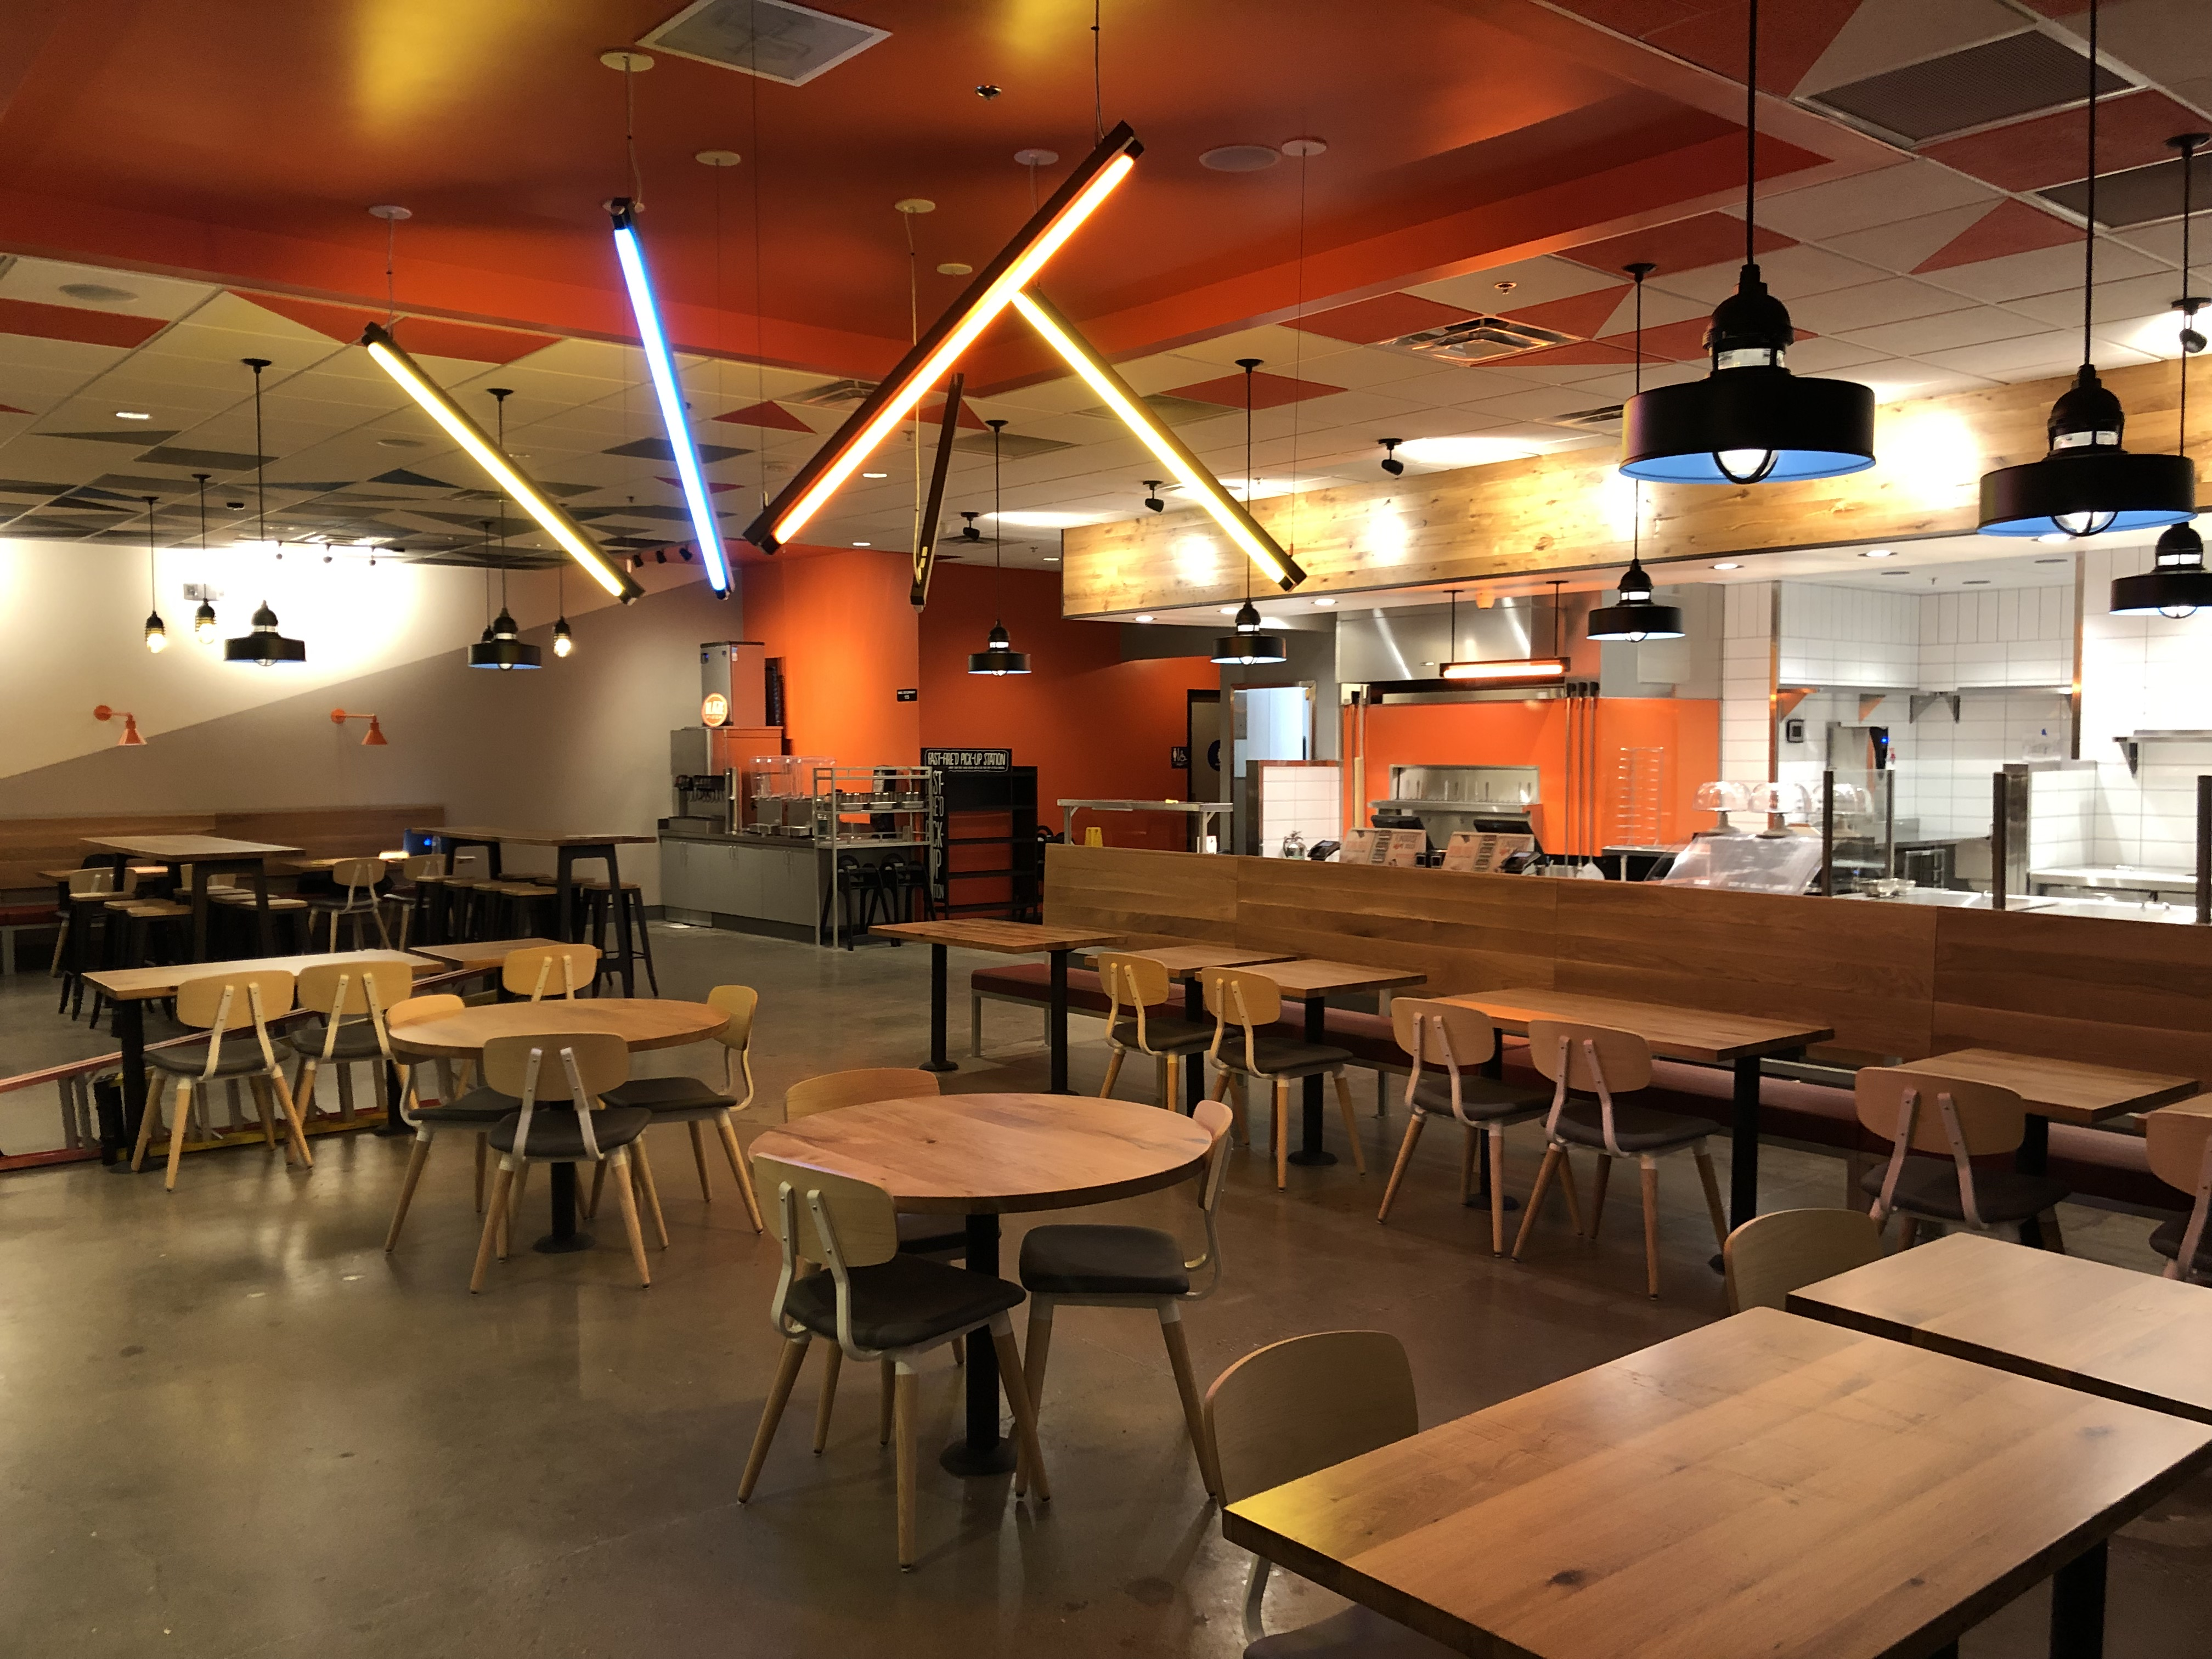 Pizza Restaurant Blaze Pizza Opens Thursday In Elk Grove With Free Pizza On Friday